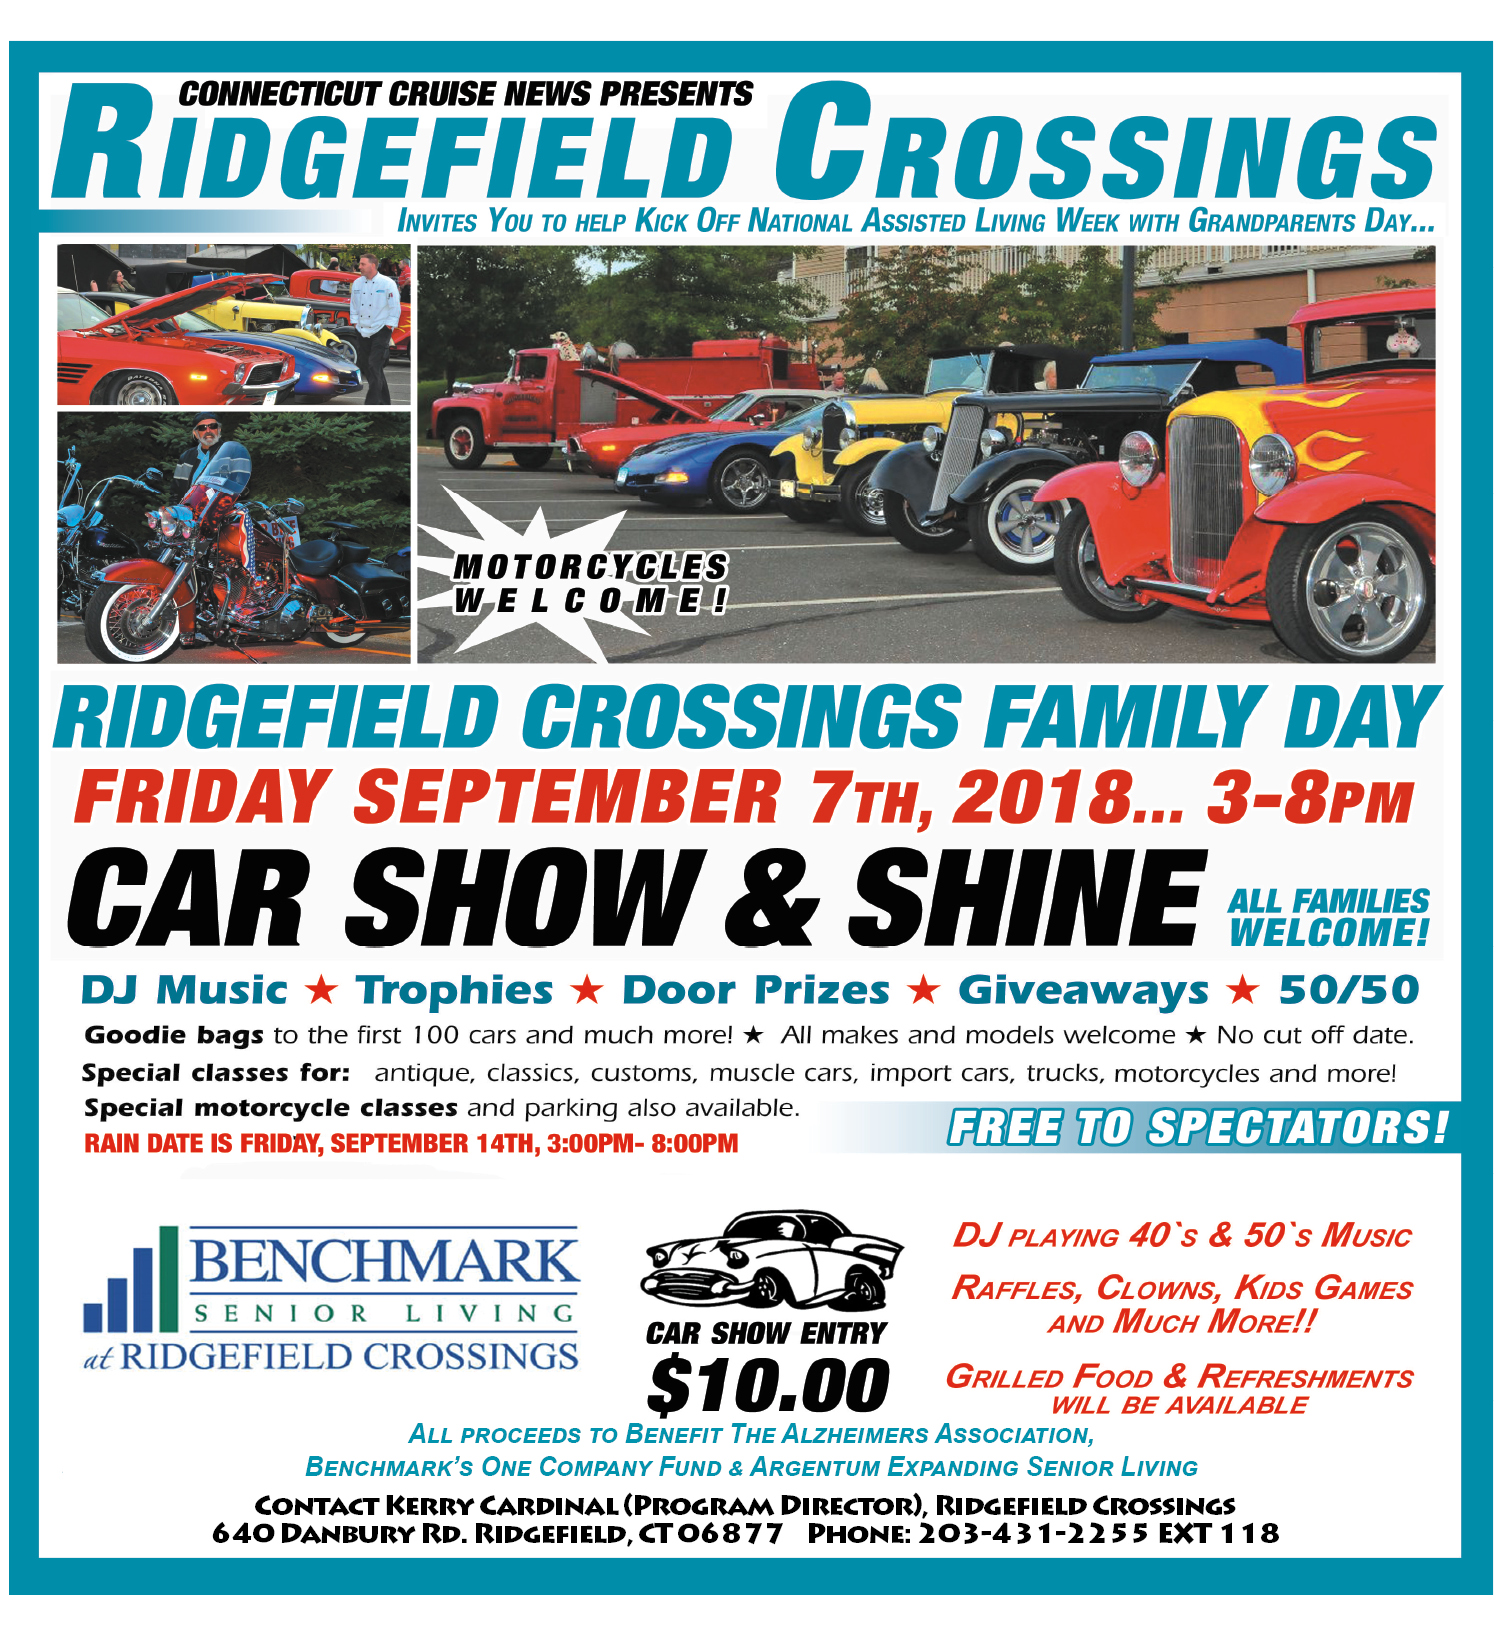 Car Show And Shine In Ridgefield On September - Car show giveaways